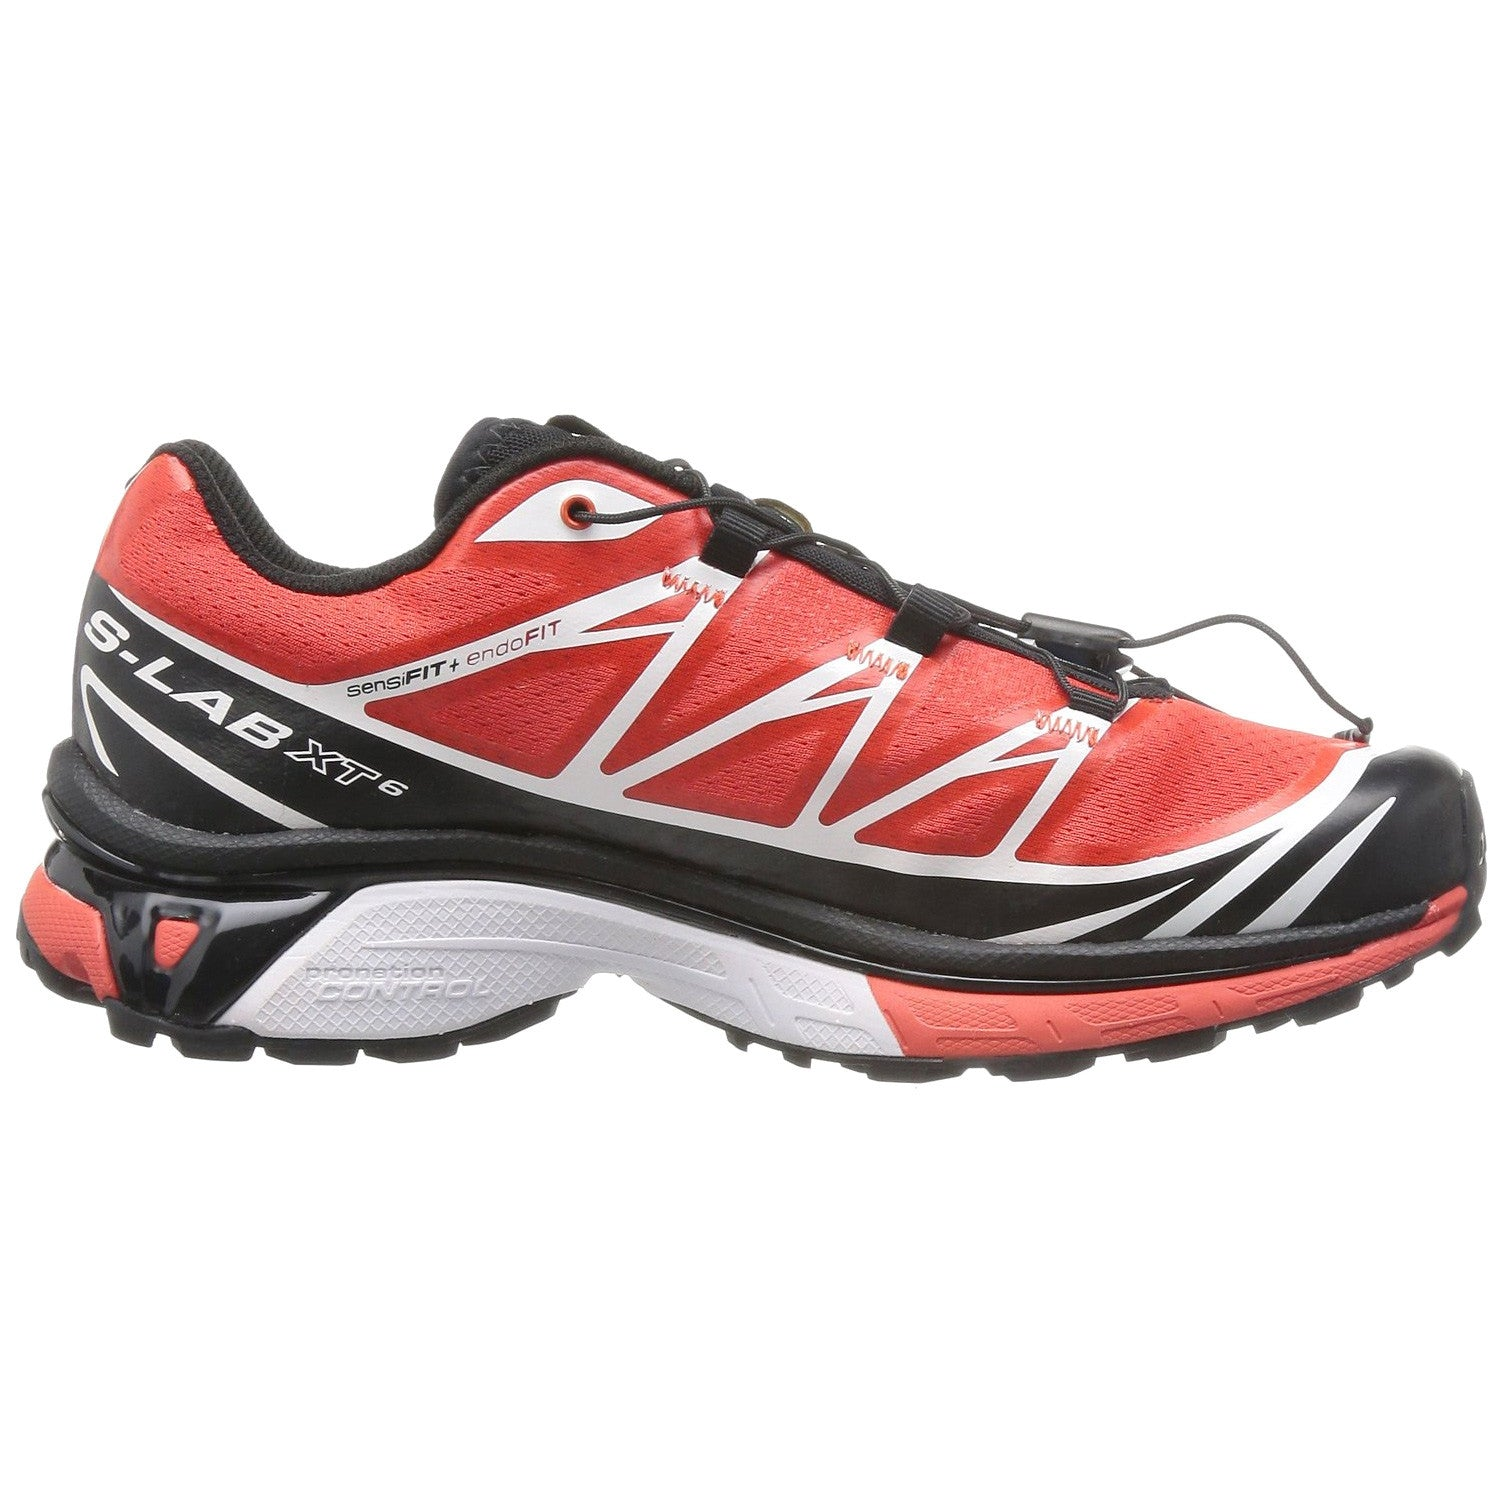 buy online ee2df 7aa7e Salomon S-Lab Xt 6 Softground Running Shoes - Black White Racing Red - -  Shoplifestyle